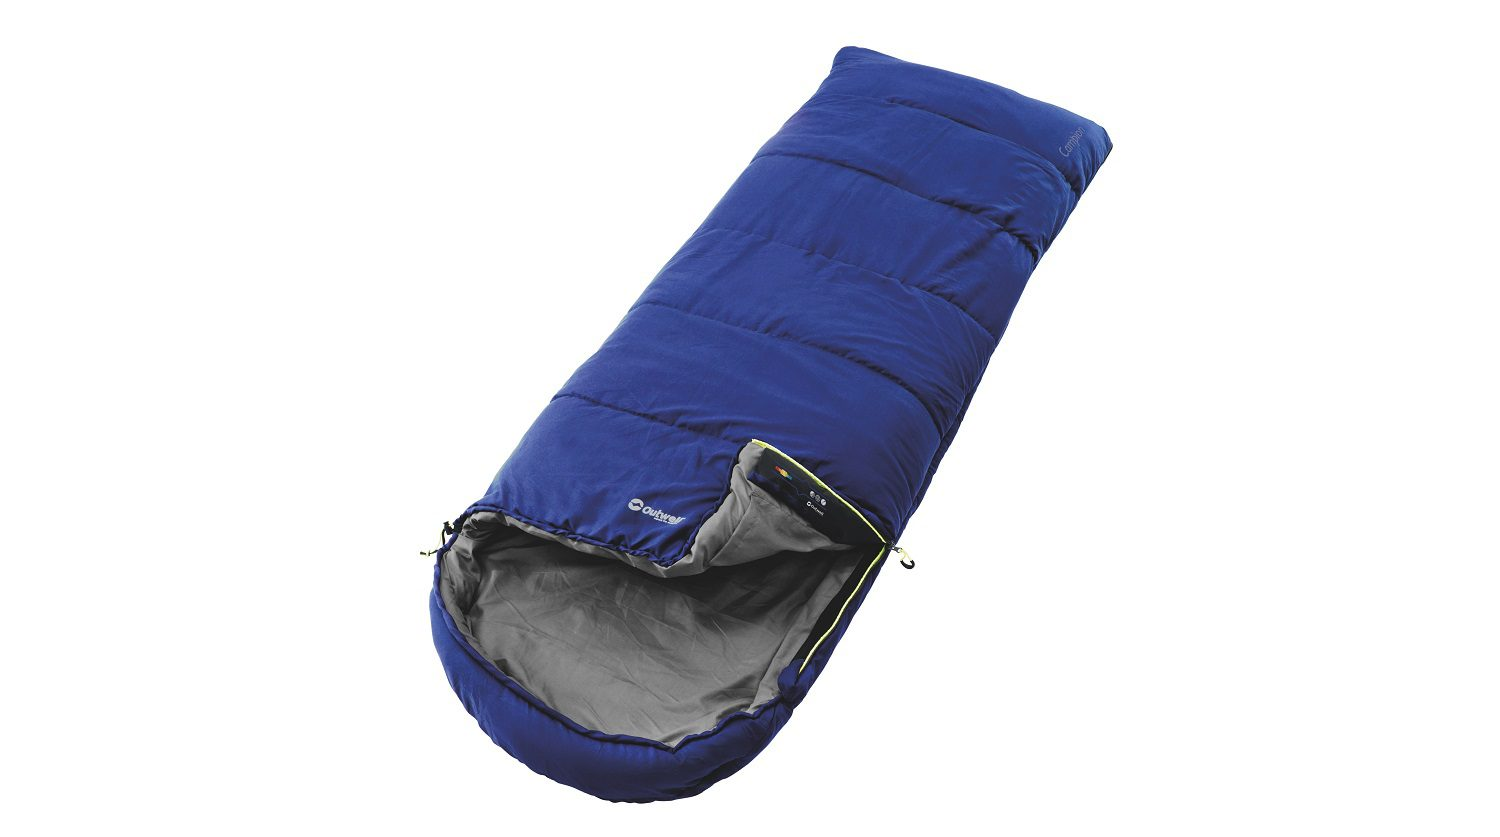 Outwell Campion Blue Sleeping Bag 2016 - 230134